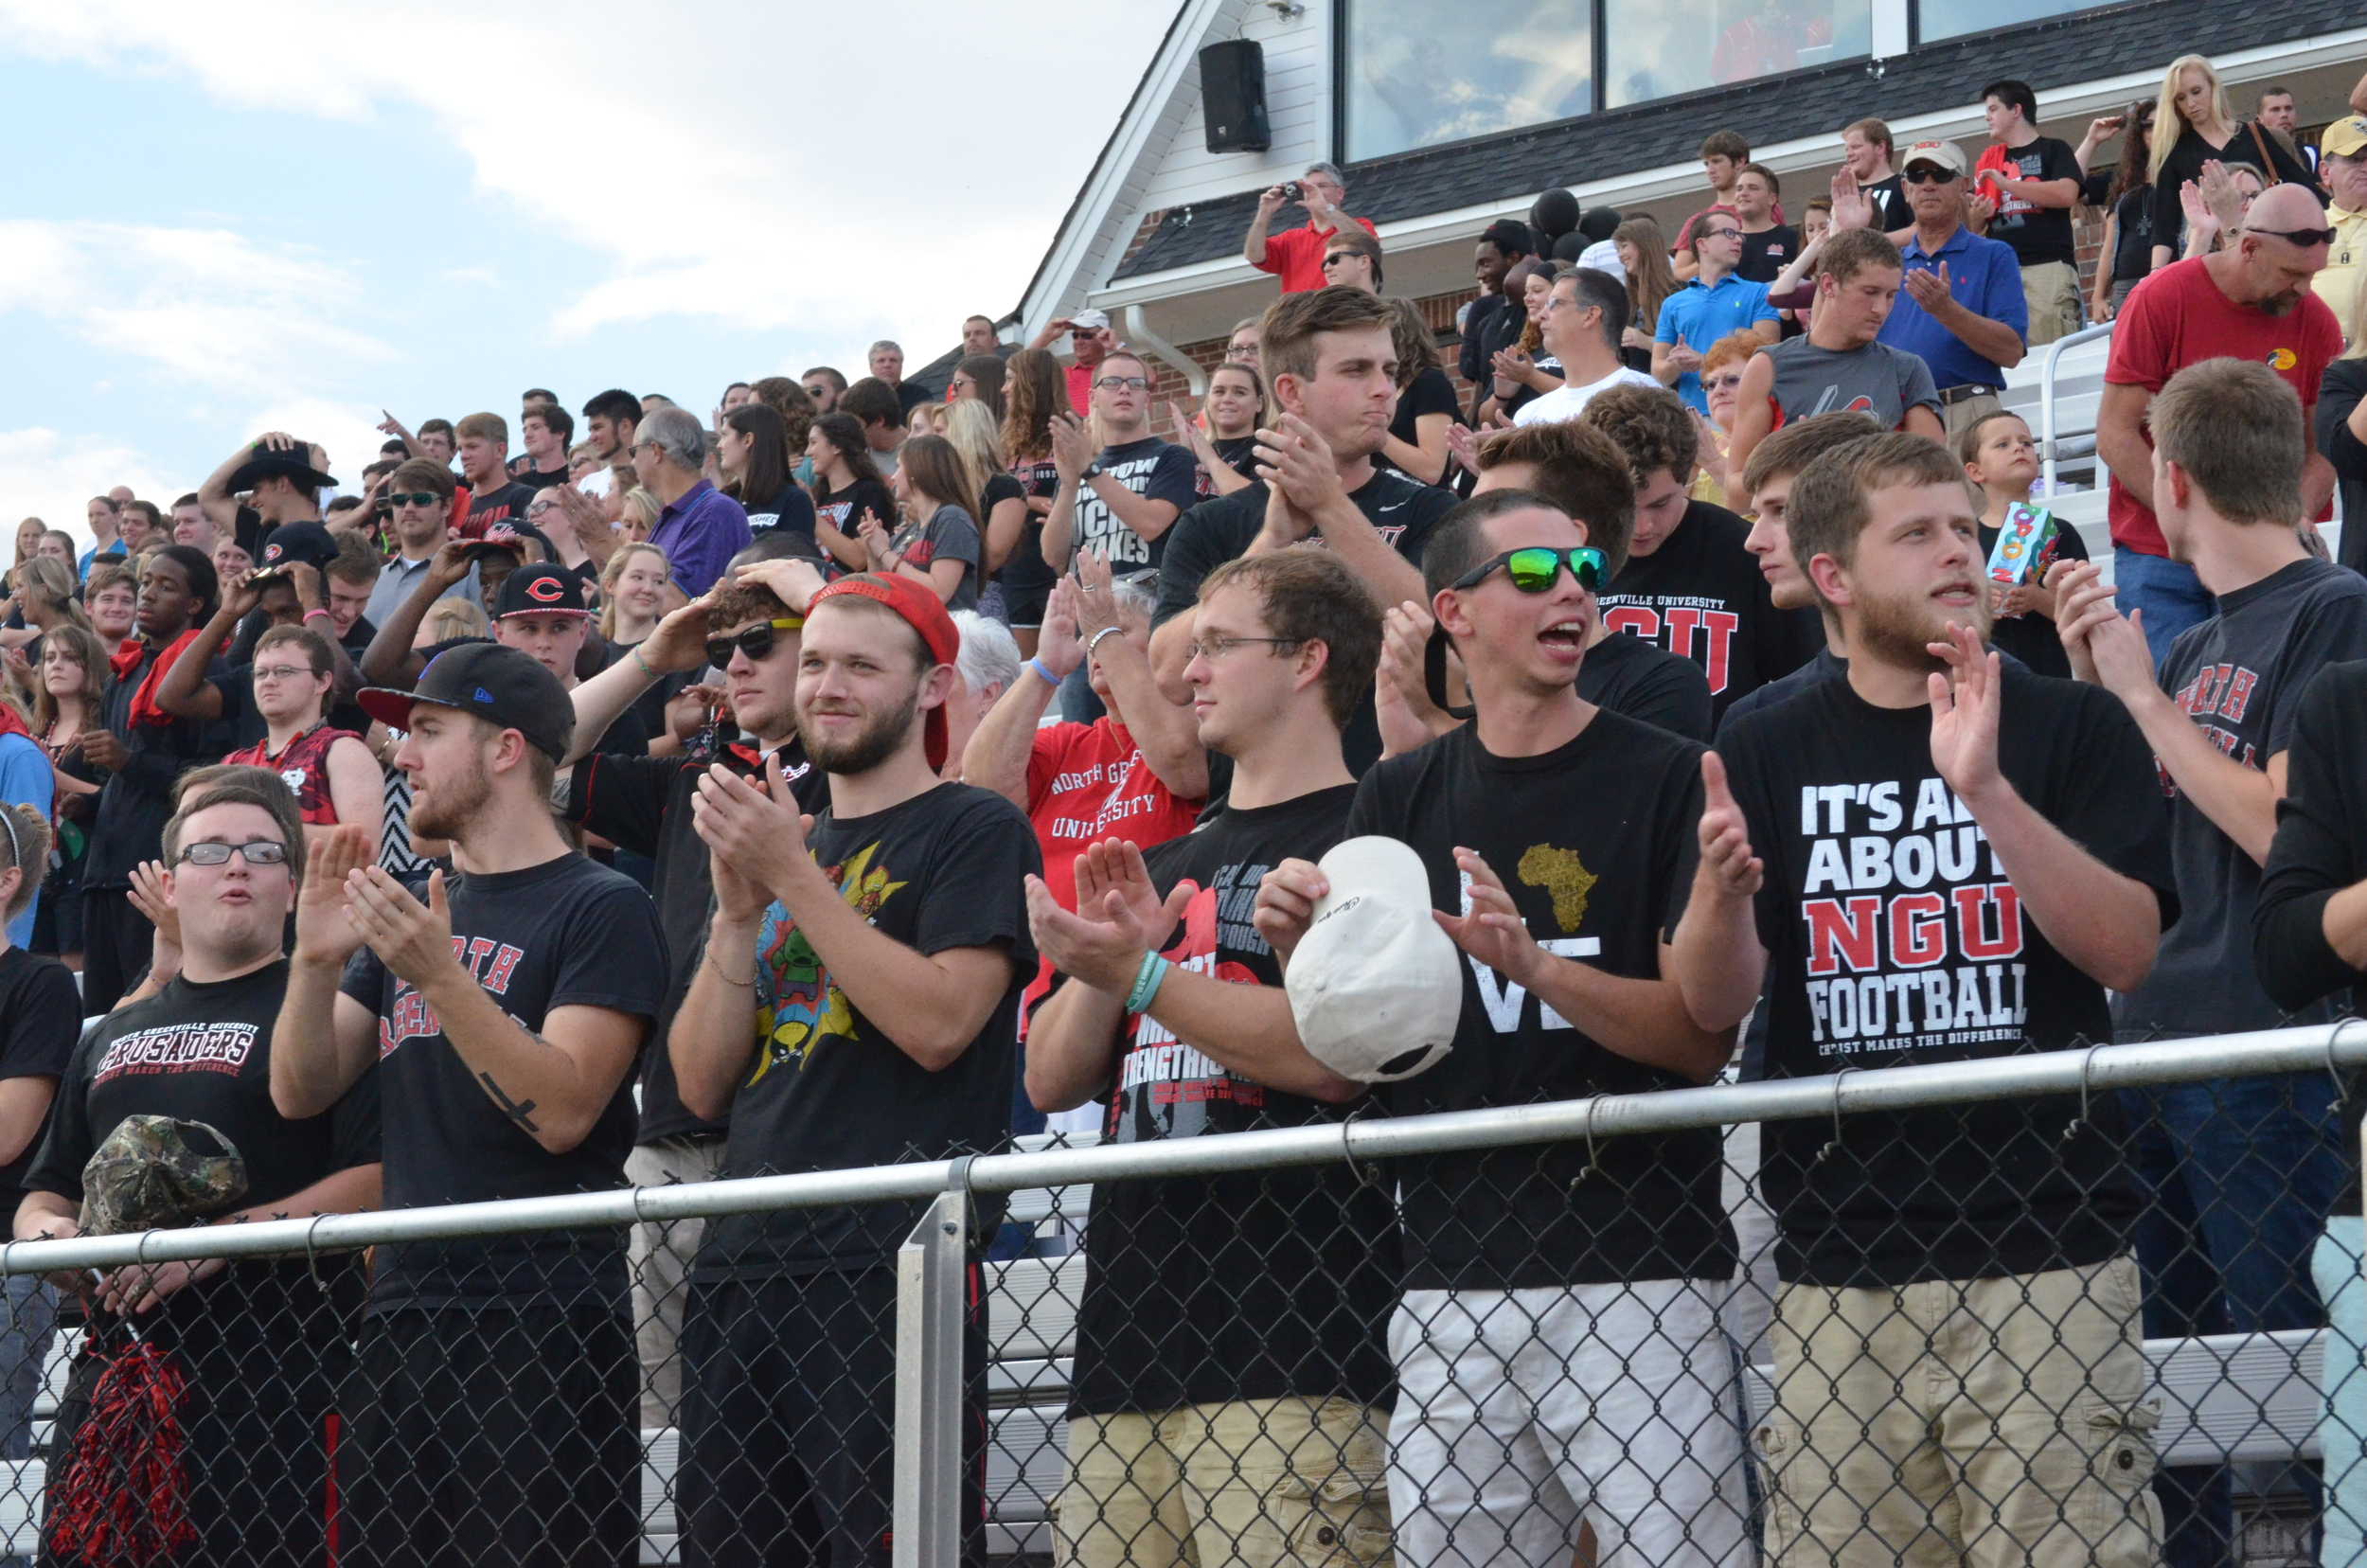 NGU students getting excited at the start of the game